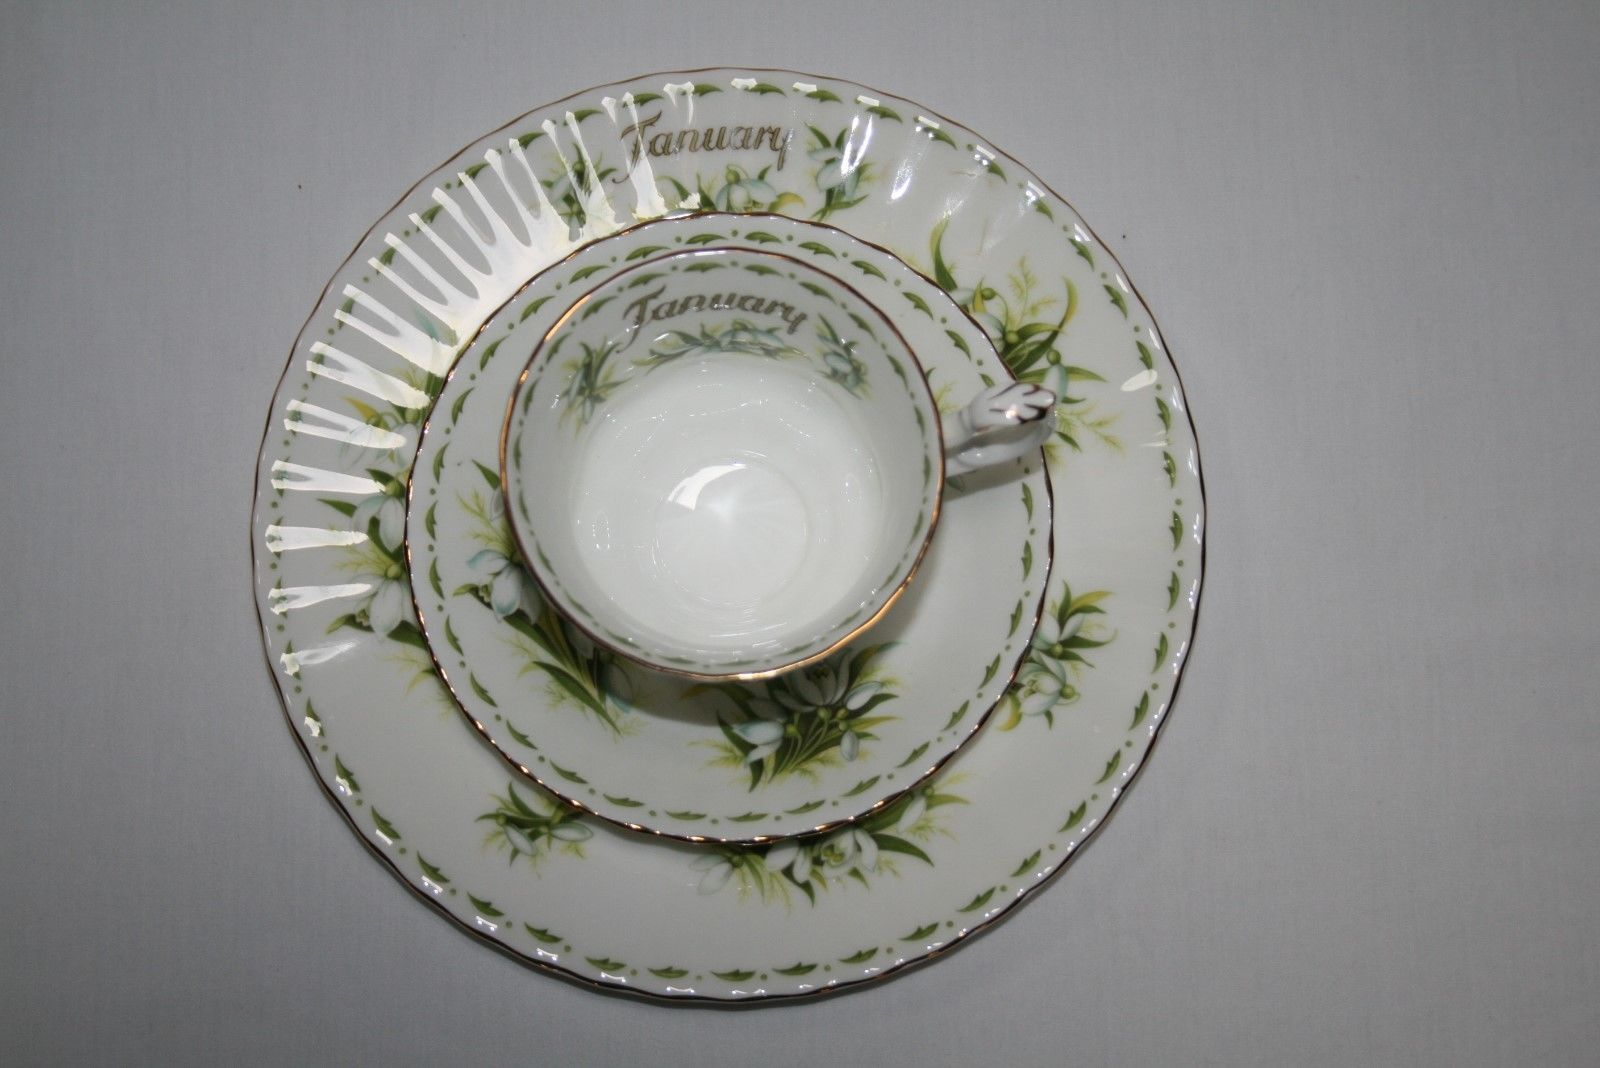 Vtg Royal Albert England 3 Pc Trio Flower of the Month Tea Cup, Saucer & Plate